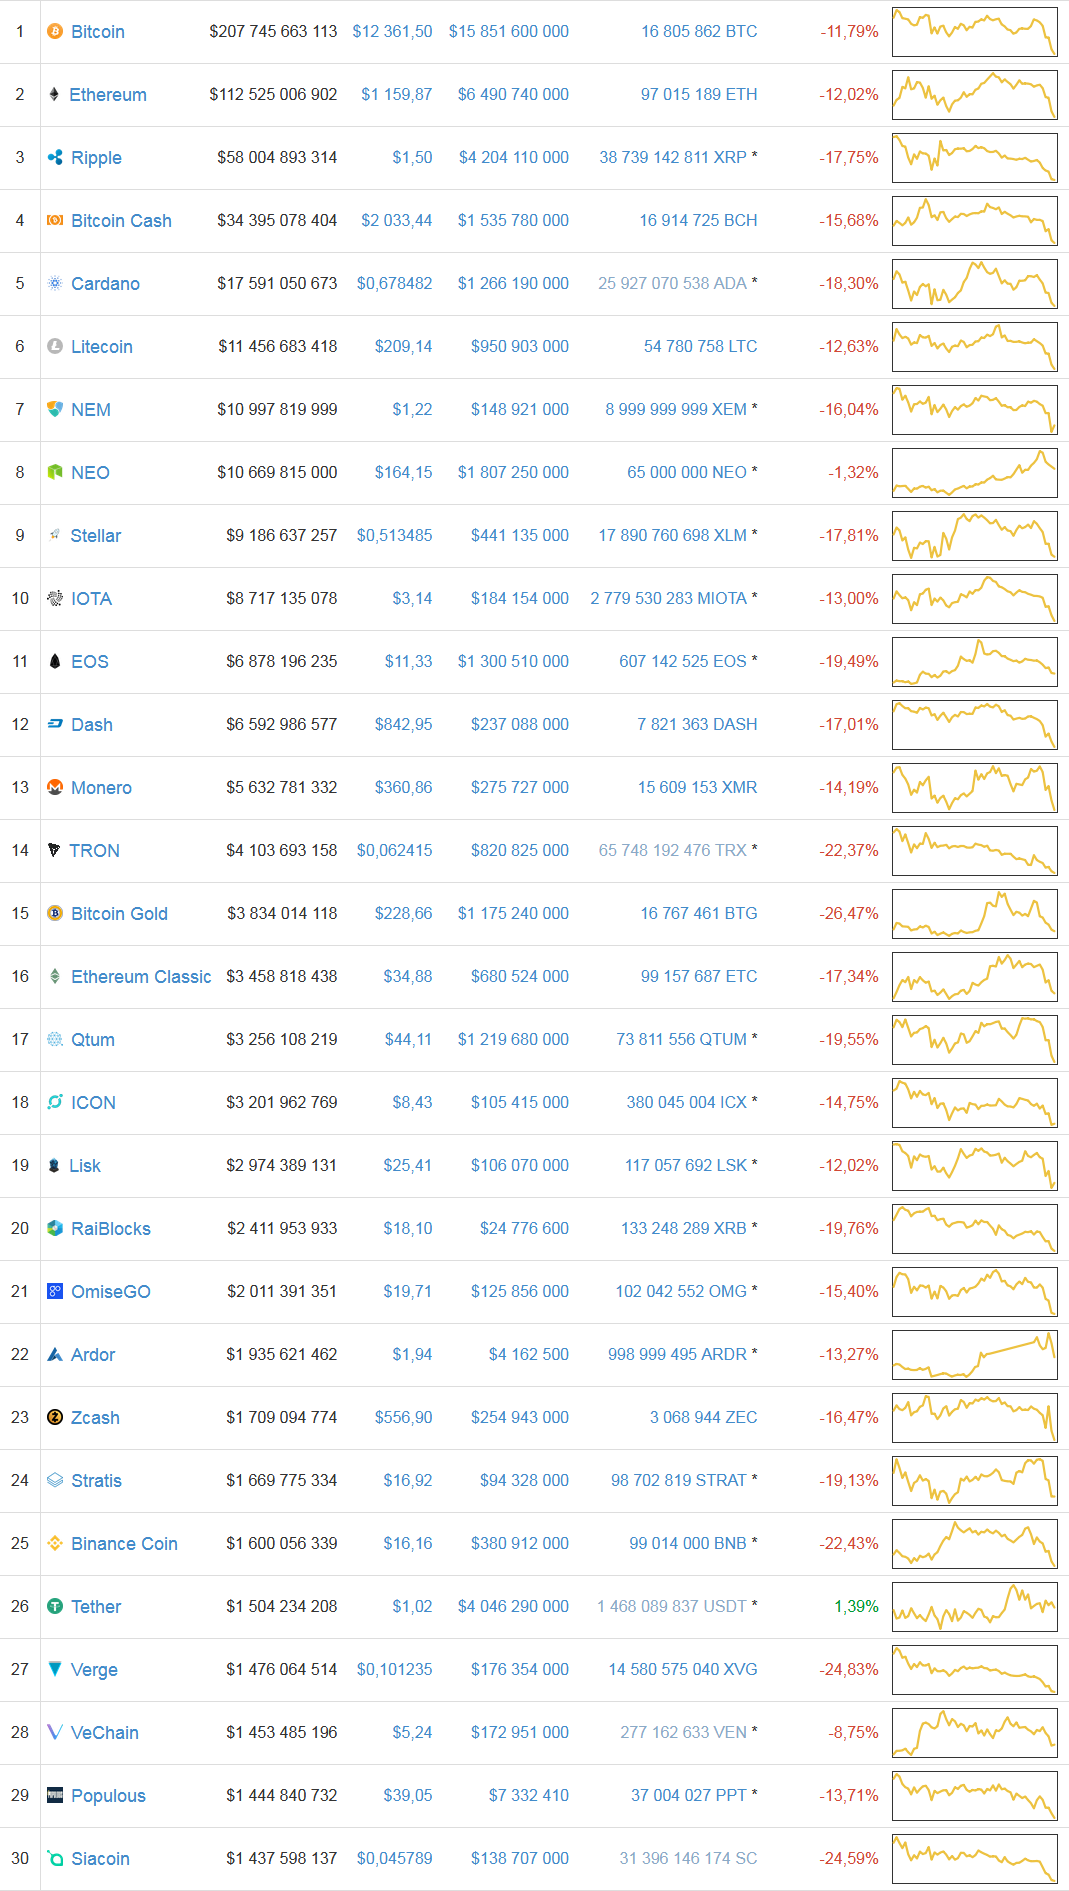 Screenshot-2018-1-16 Cryptocurrency Market Capitalizations CoinMarketCap